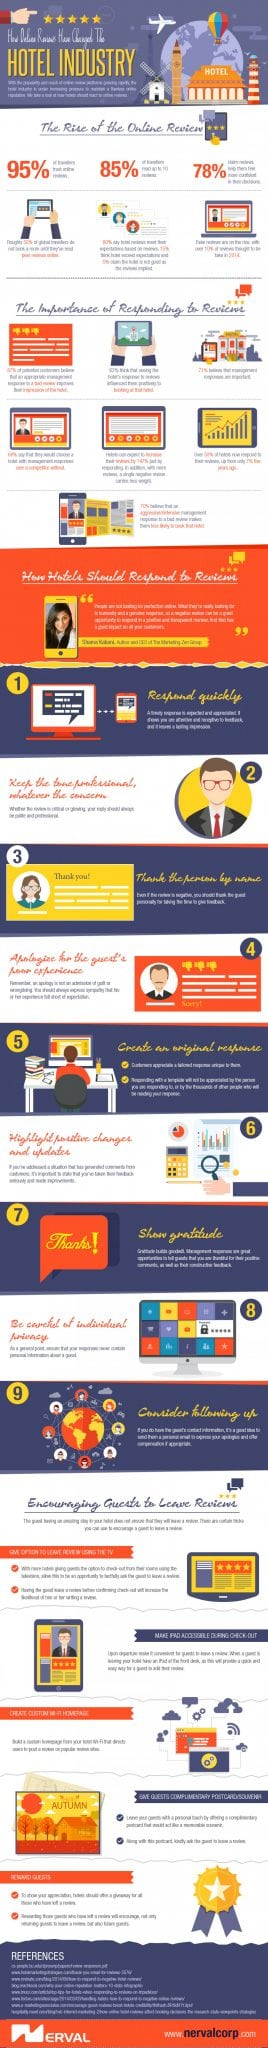 Photo of How Online Reviews Have Changed the Hotel Industry [INFOGRAPHIC]